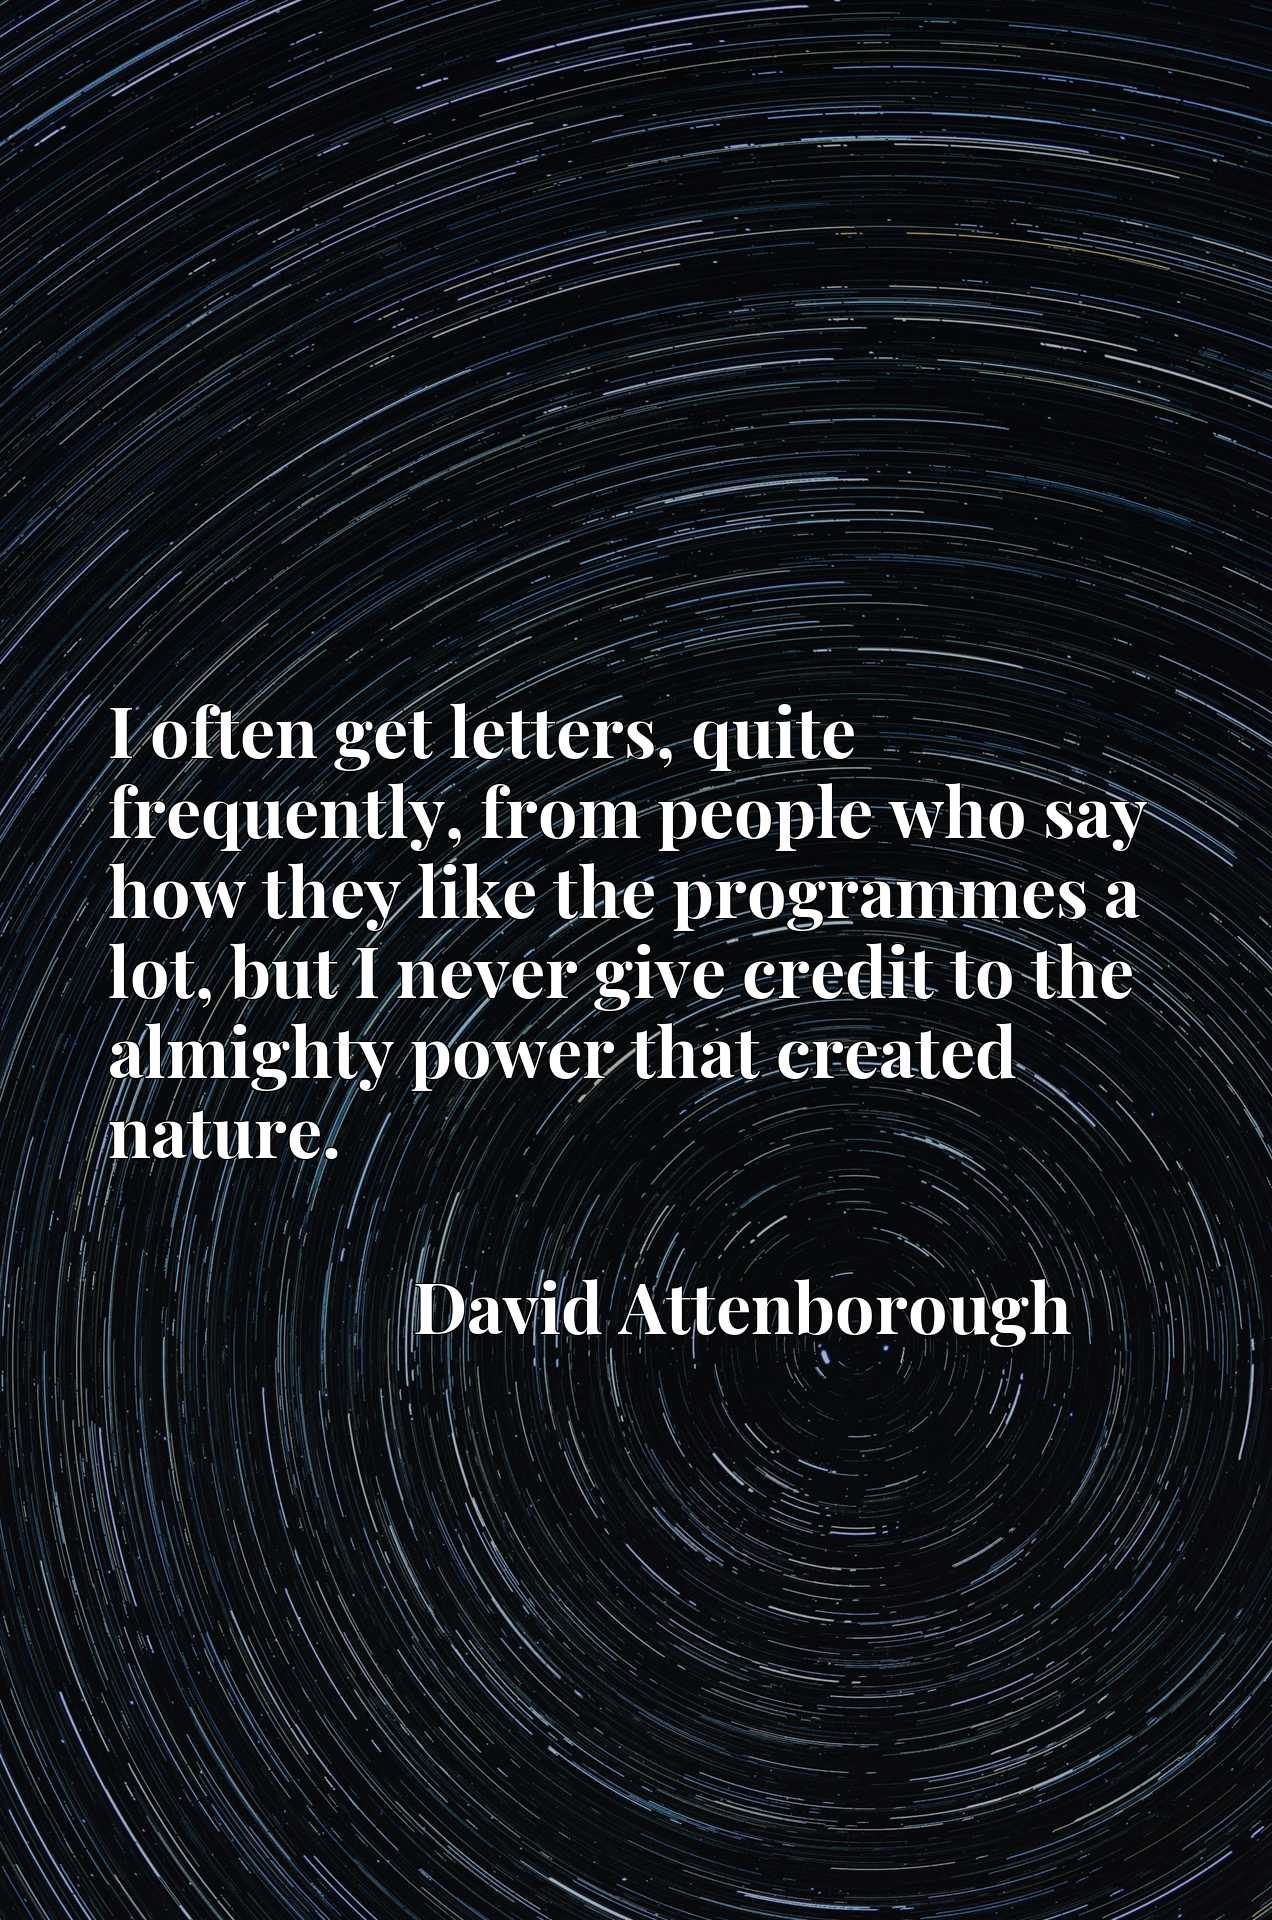 Quote Picture :I often get letters, quite frequently, from people who say how they like the programmes a lot, but I never give credit to the almighty power that created nature.